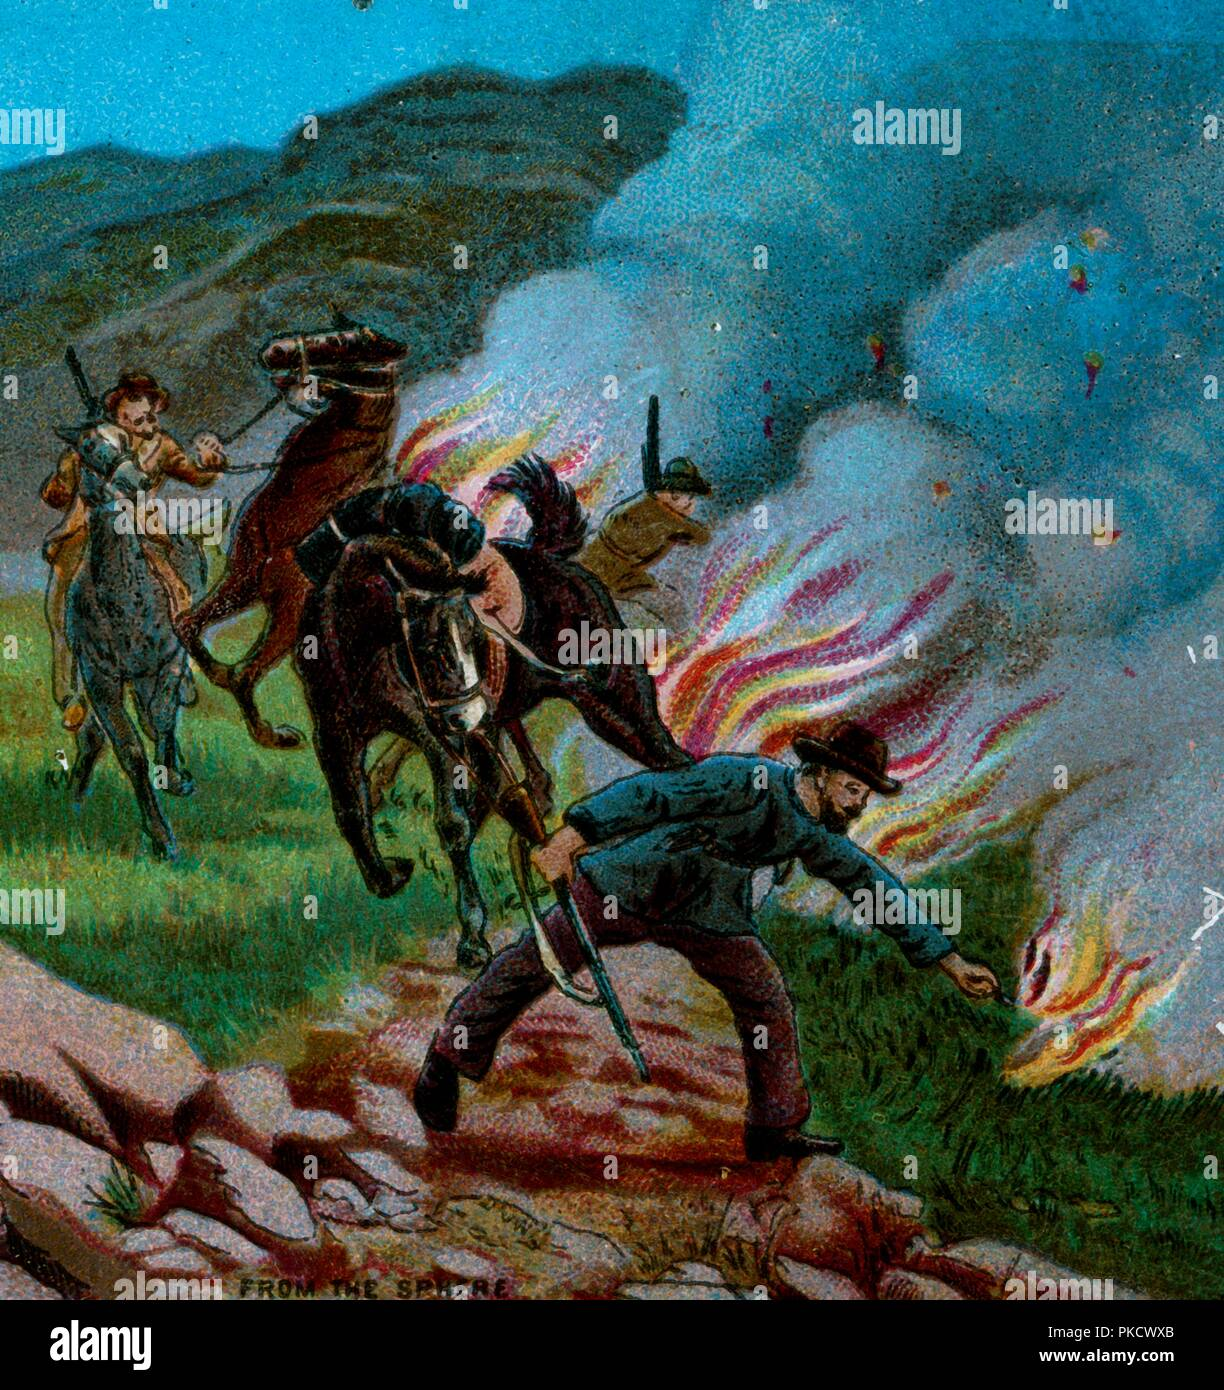 'Boers Firing the Veldt', 1900. Boer farmers setting fire to dry grass in the war against the British. Scene from the Second Anglo-Boer War (1899-1902) fought in what is now South Africa, between Great Britain and the independent Boer republics of the Orange Free State and the South African Republic (known as as the Transvaal by the British). From Coloured Lantern Slides. Junior Lecturers' Series. The Boer War of 1900: Chapter V -- Mafeking and Pretoria. [W. Butcher and Sons, London, 1900] - Stock Image